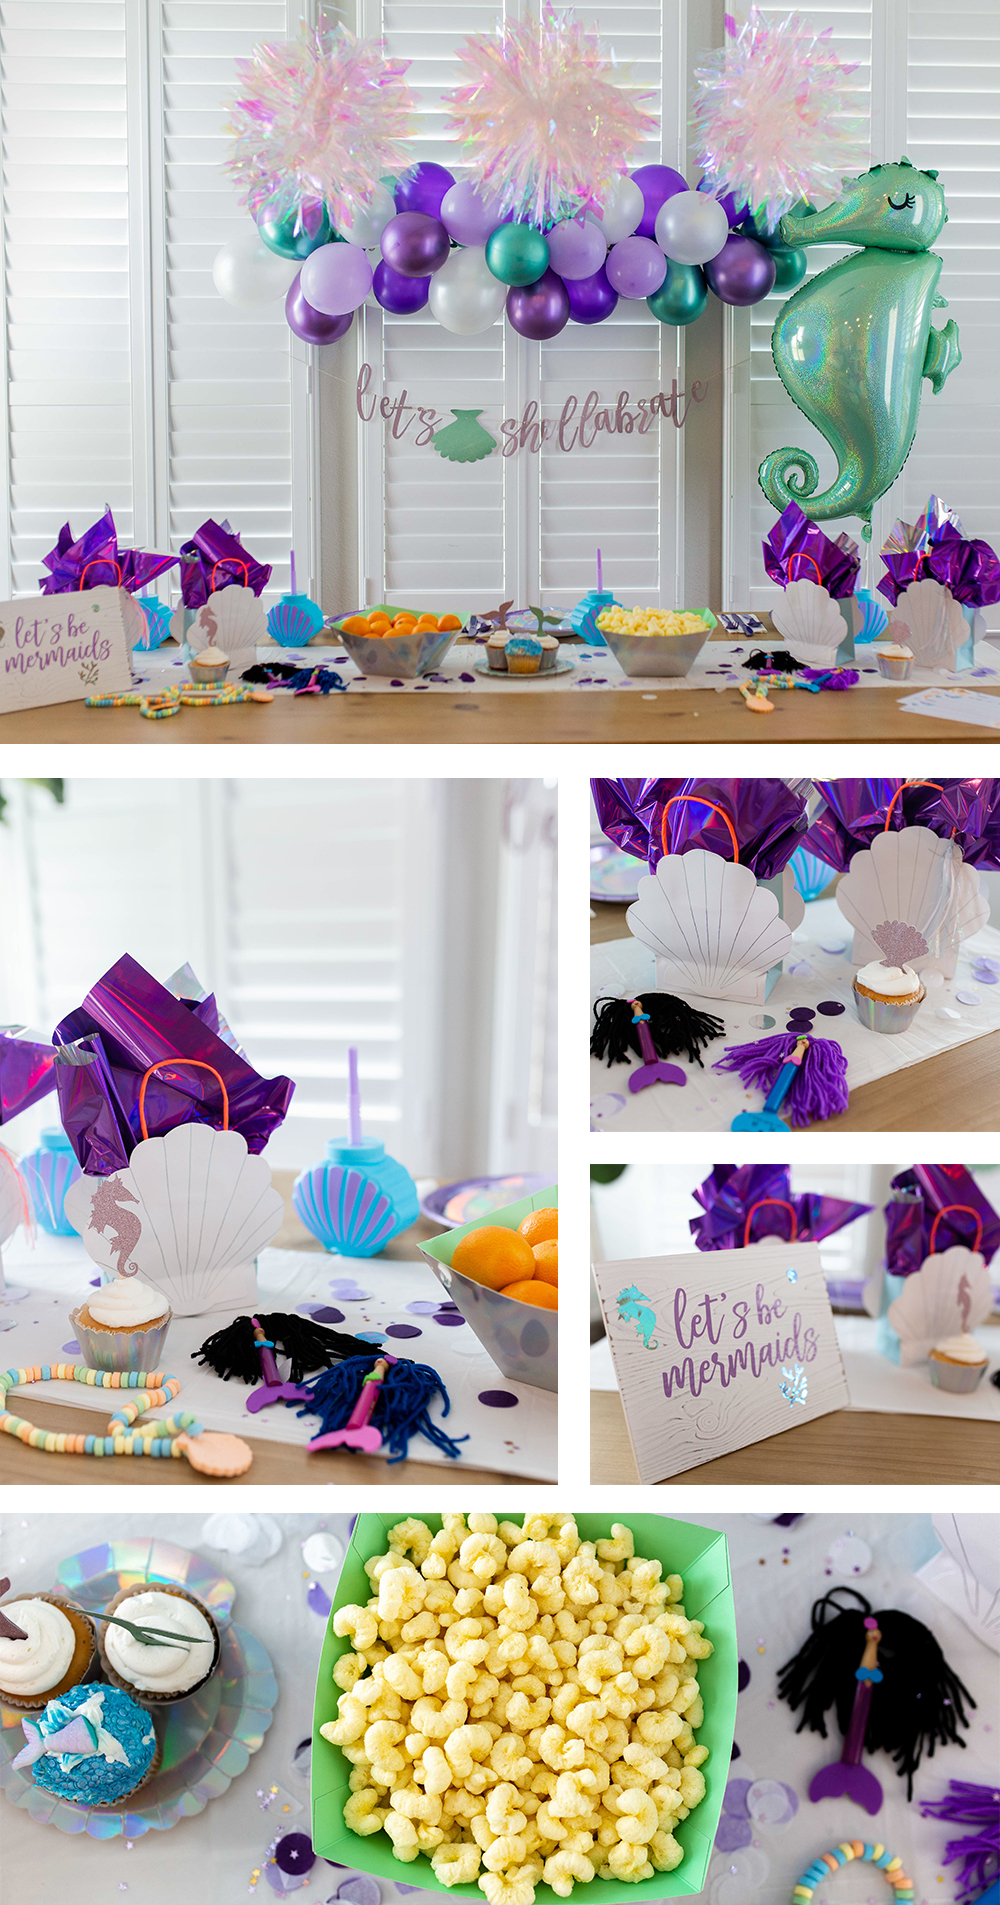 Children's mermaid themed party lifestyle brand photography. Photo by Erin Reas based in Austin, TX